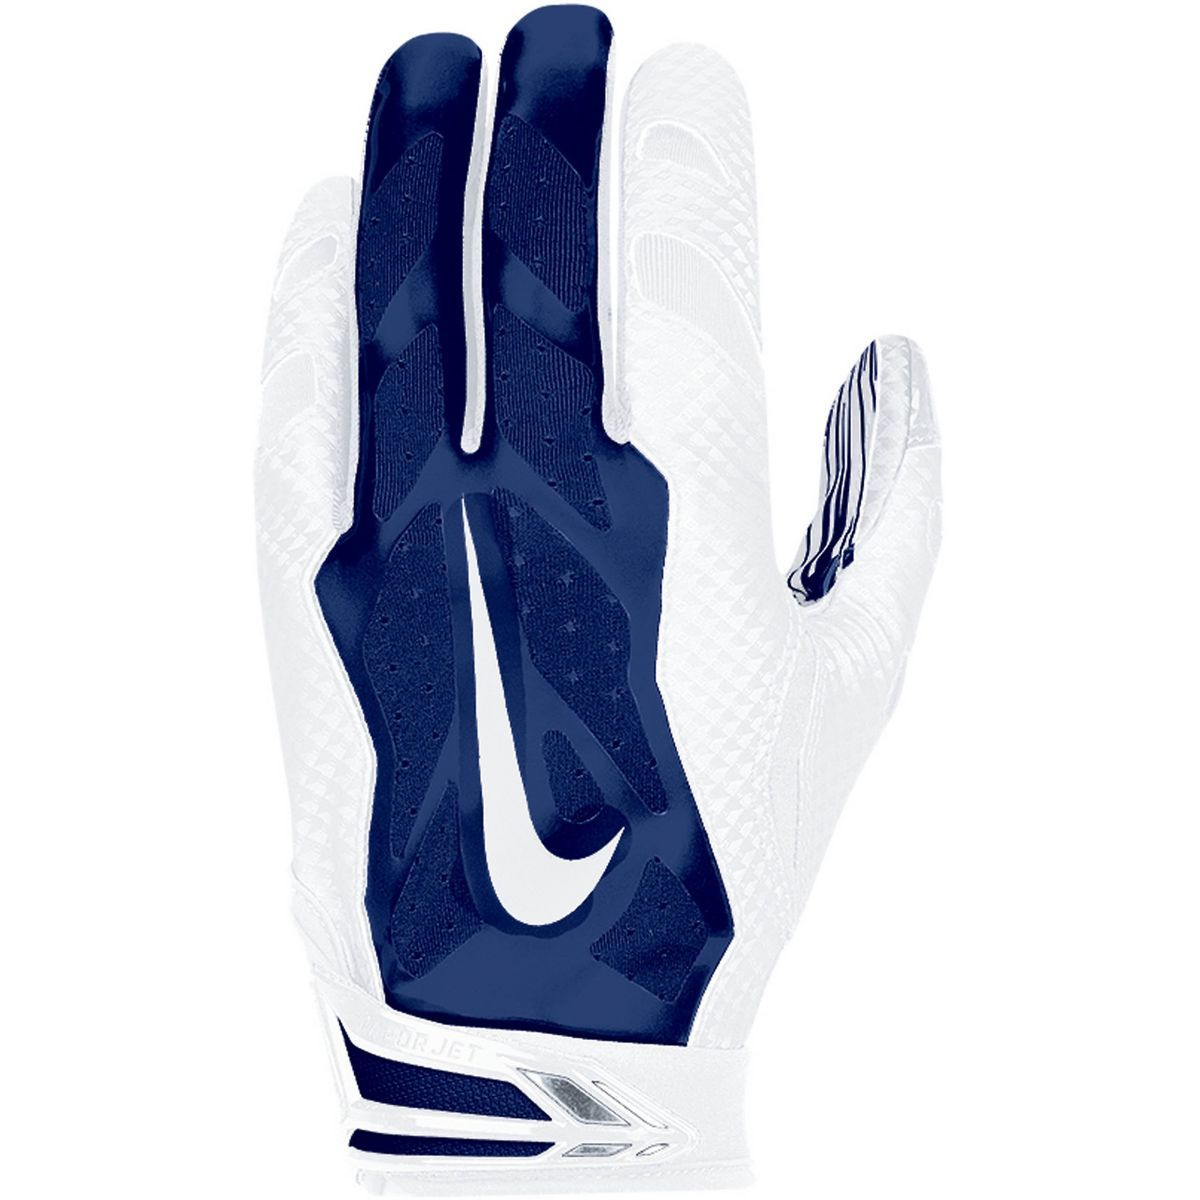 Nike Football Gloves Youth Size Chart: Nike Vapor Jet 3.0 Youth American Football Gloves